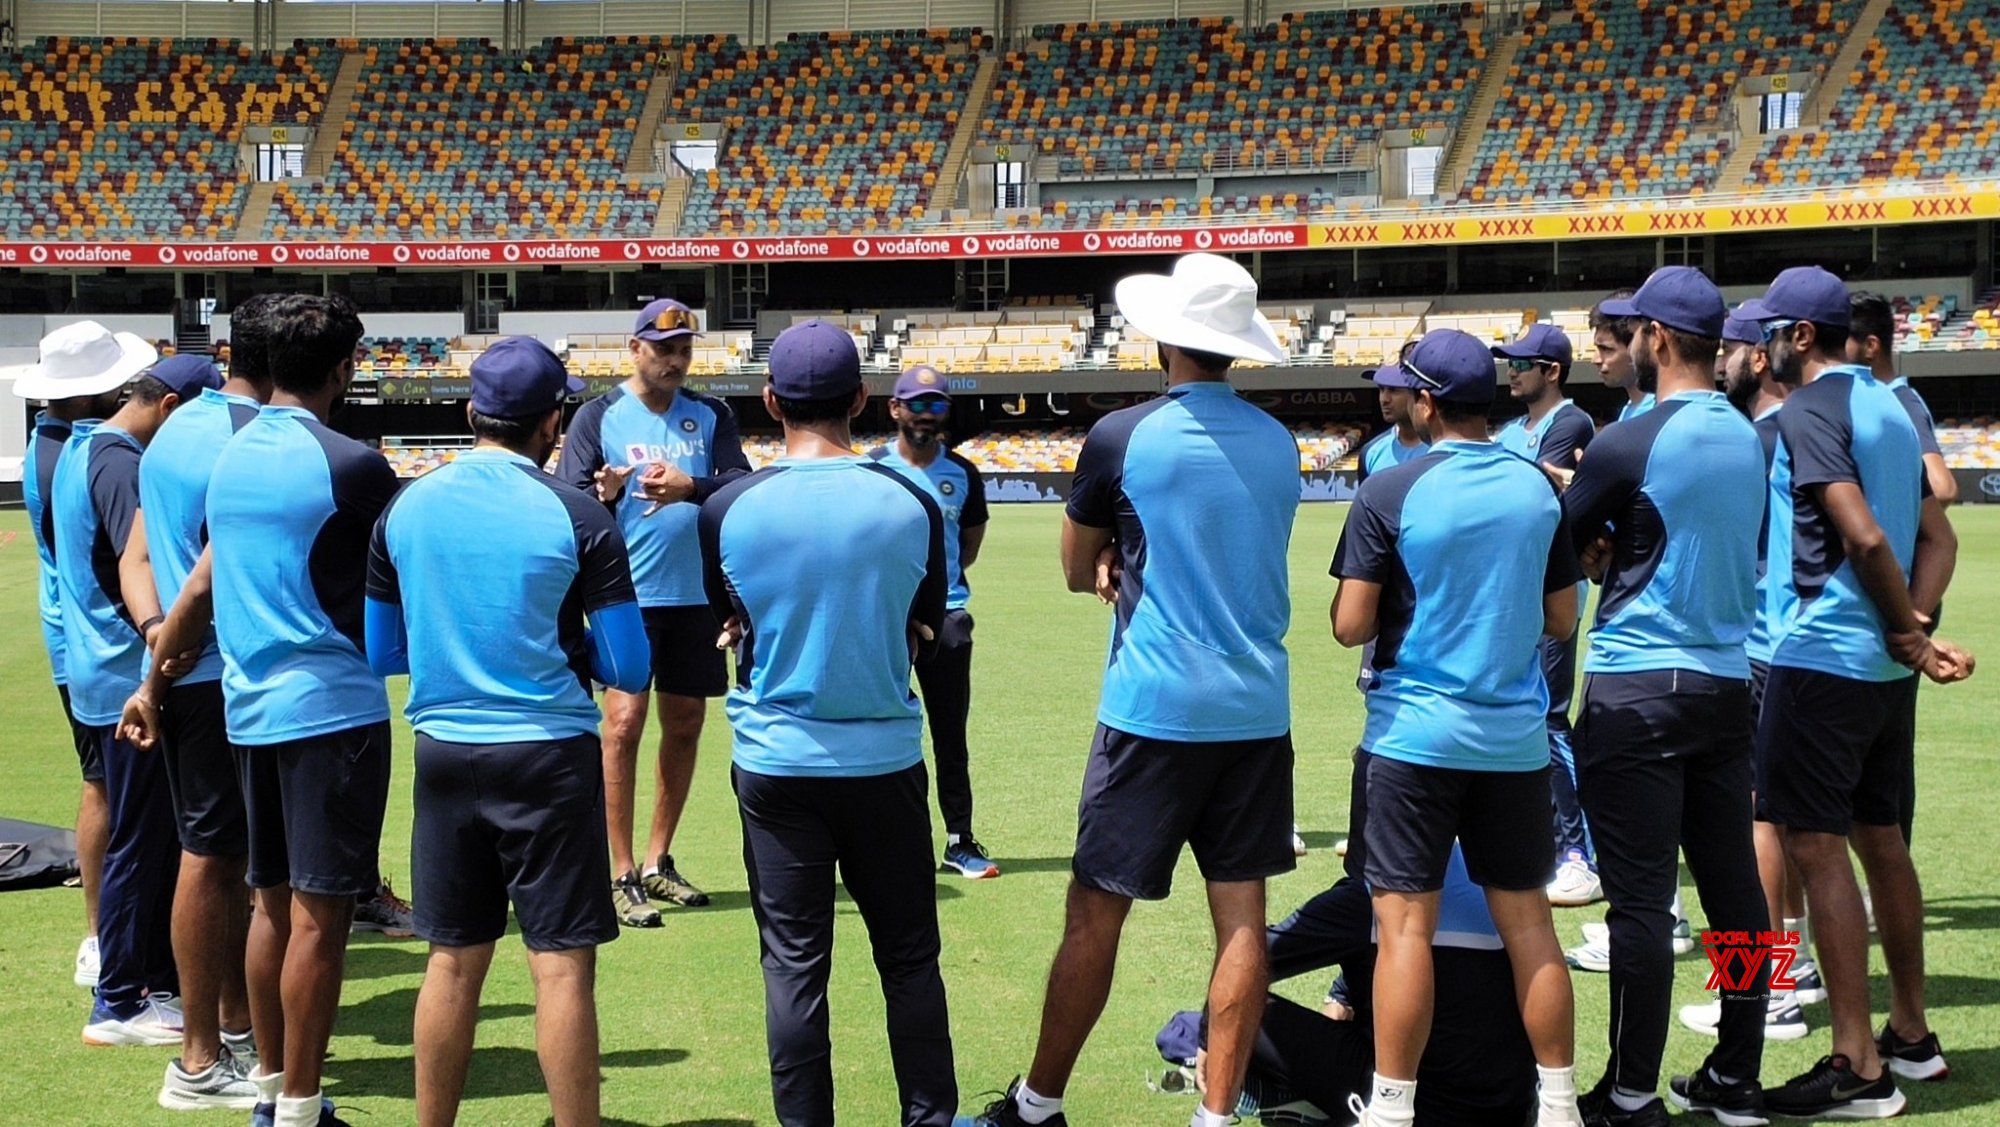 Indians brush aside housekeeping issues, say focus is on Gabba